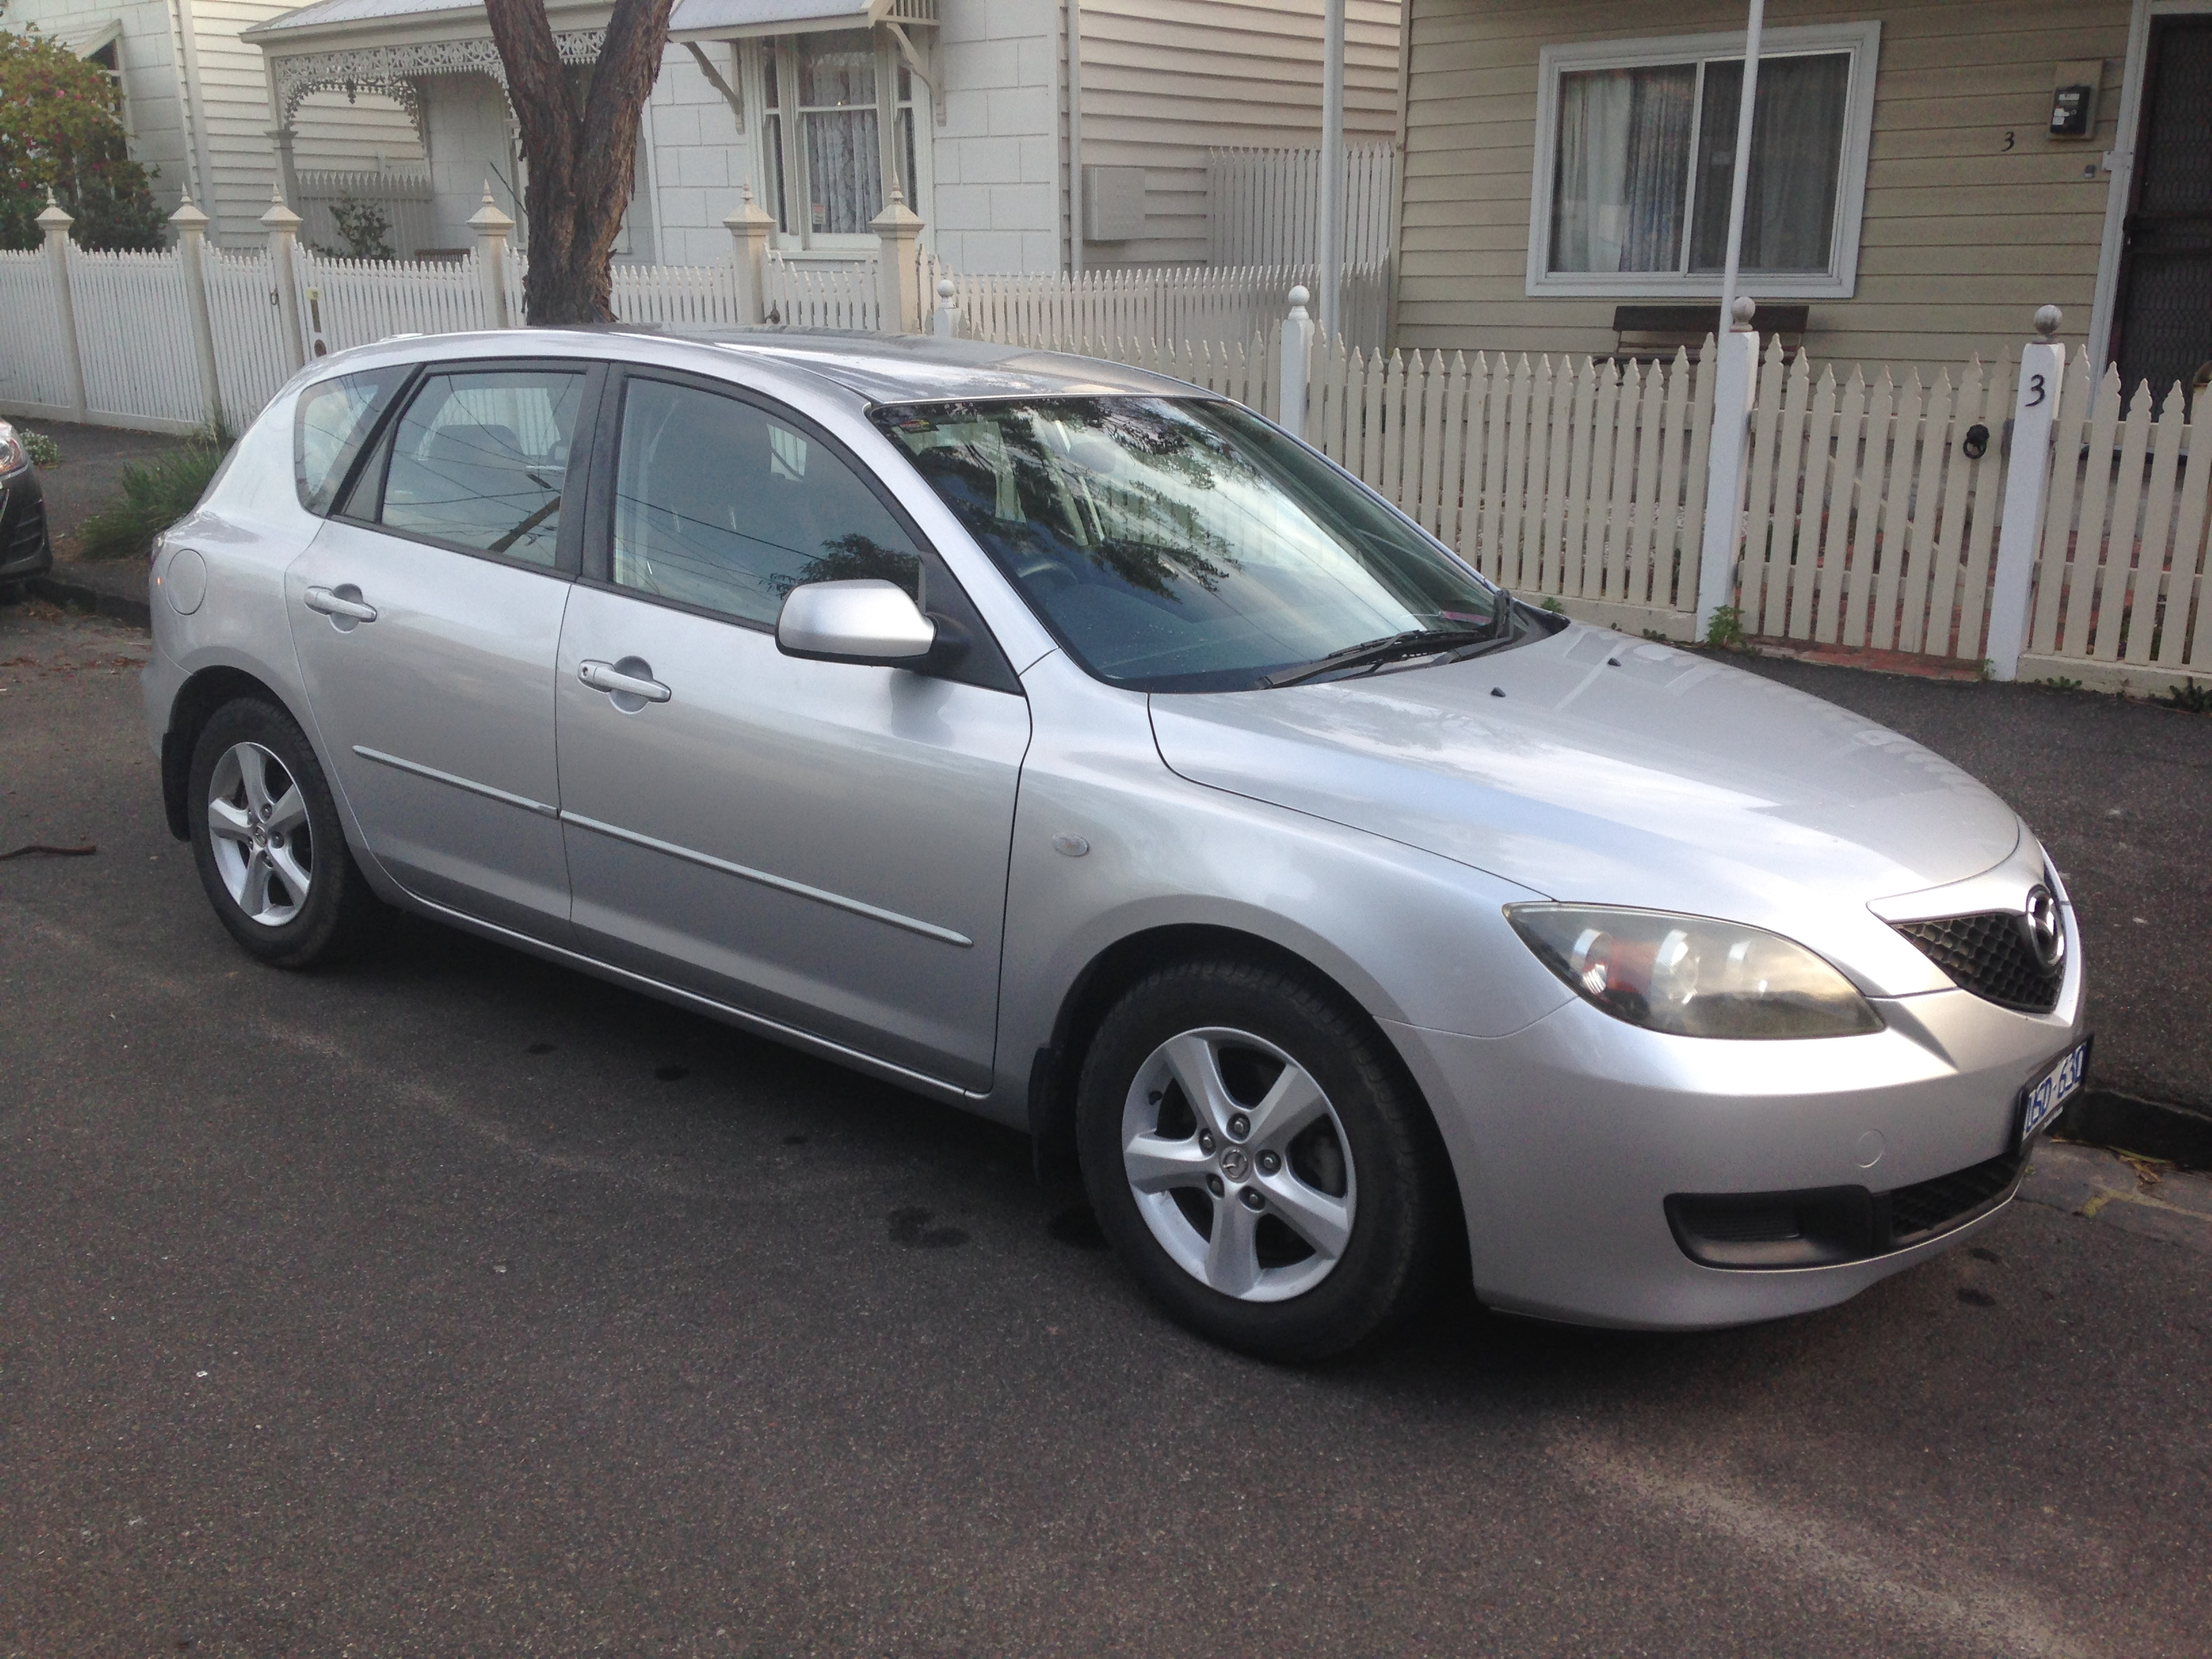 Picture of Georgia's 2007 Mazda 3